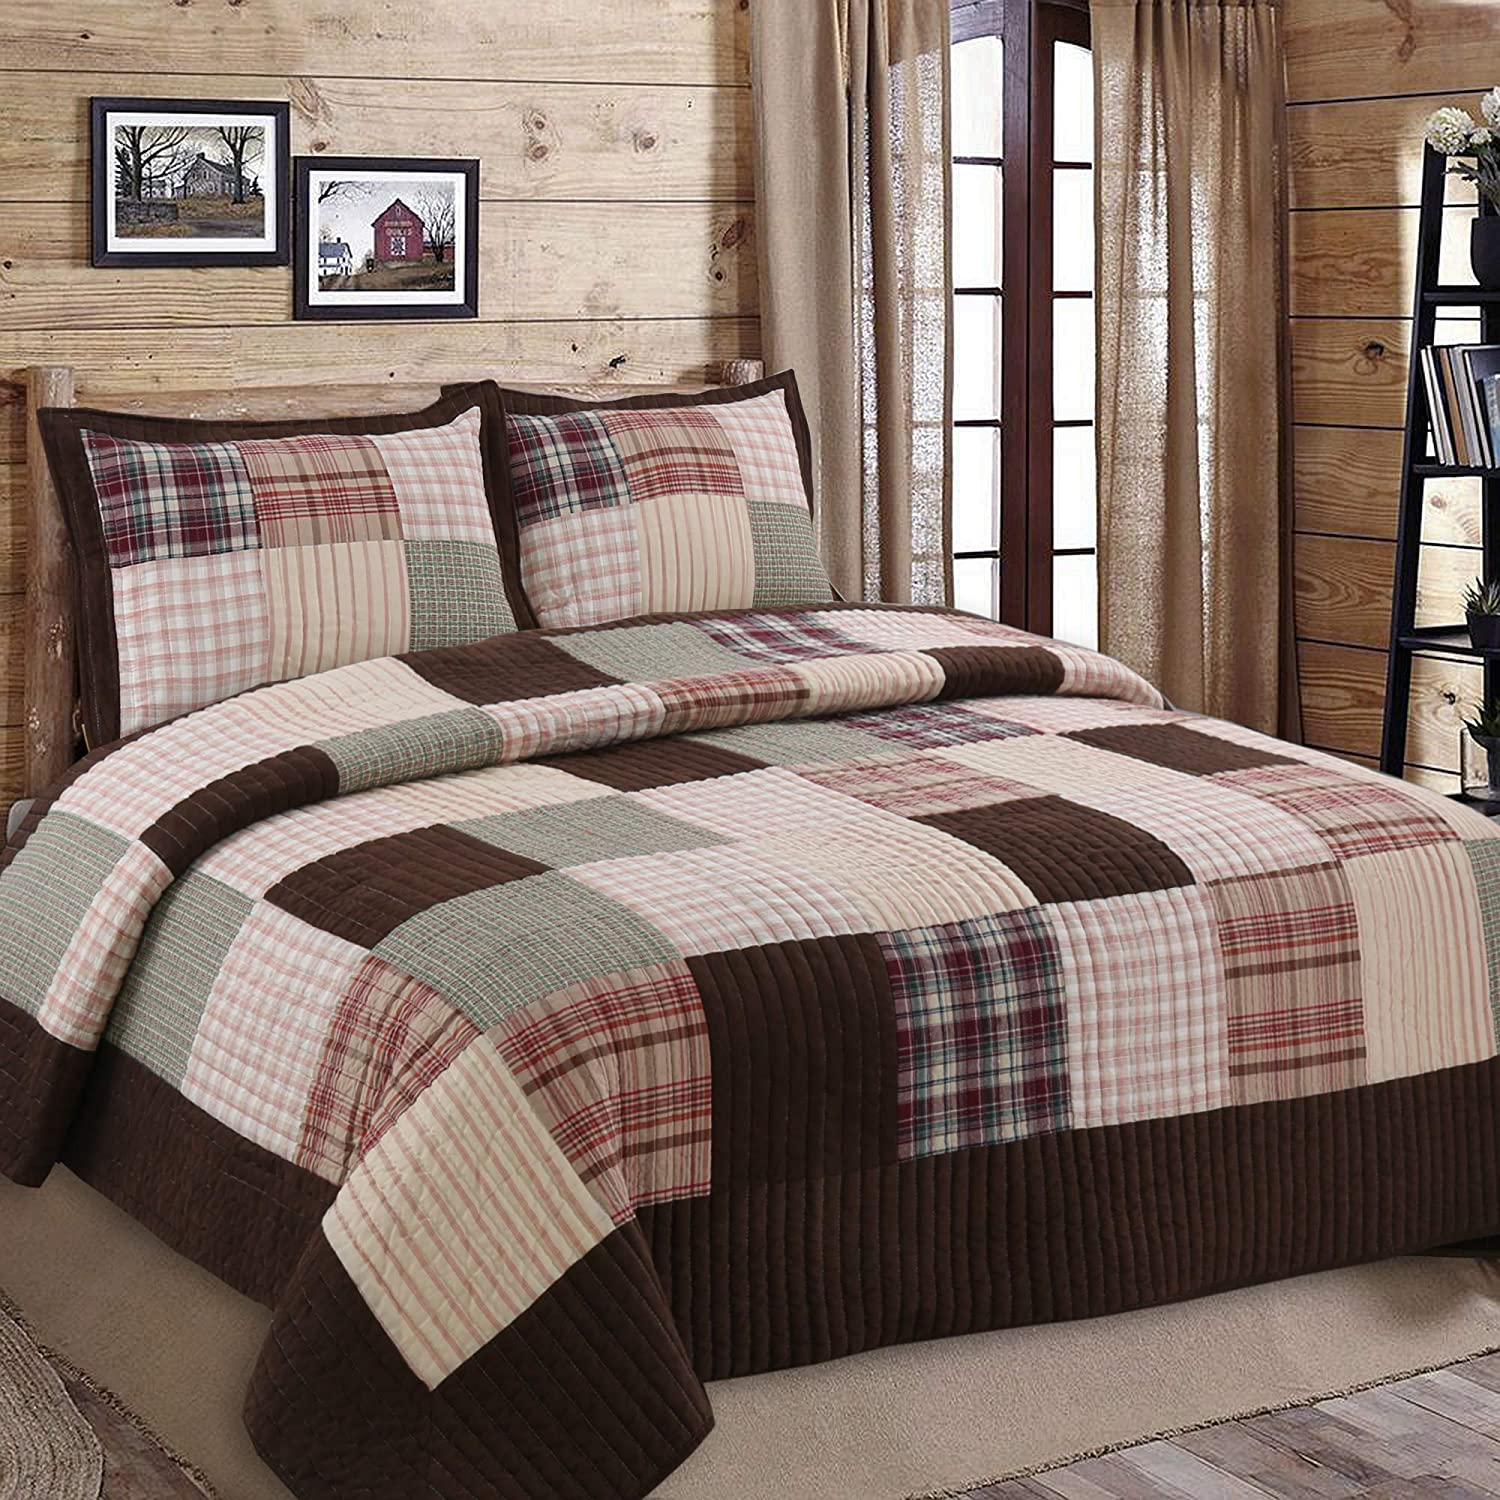 Brody Brown Plaid Max 74% OFF Stripe Patchwork 3-Piece Kin Bombing new work Cotton Reversible